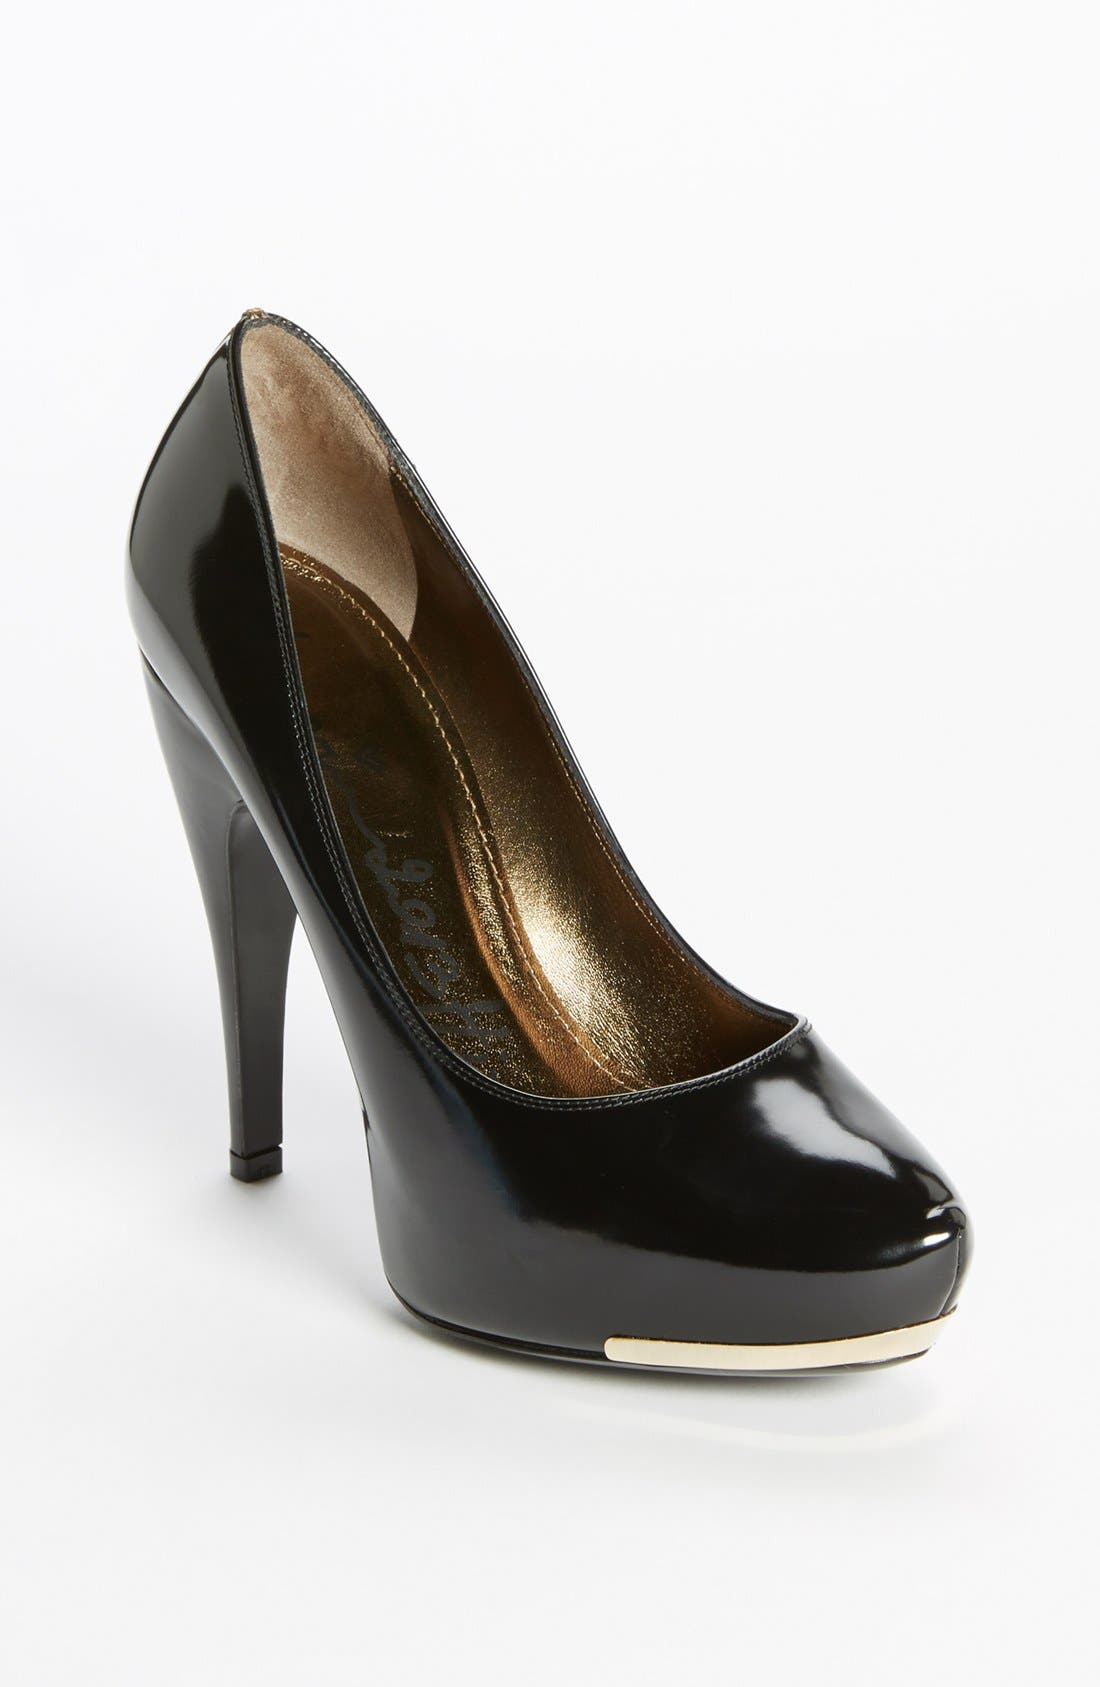 Main Image - Lanvin Internal Platform Pump